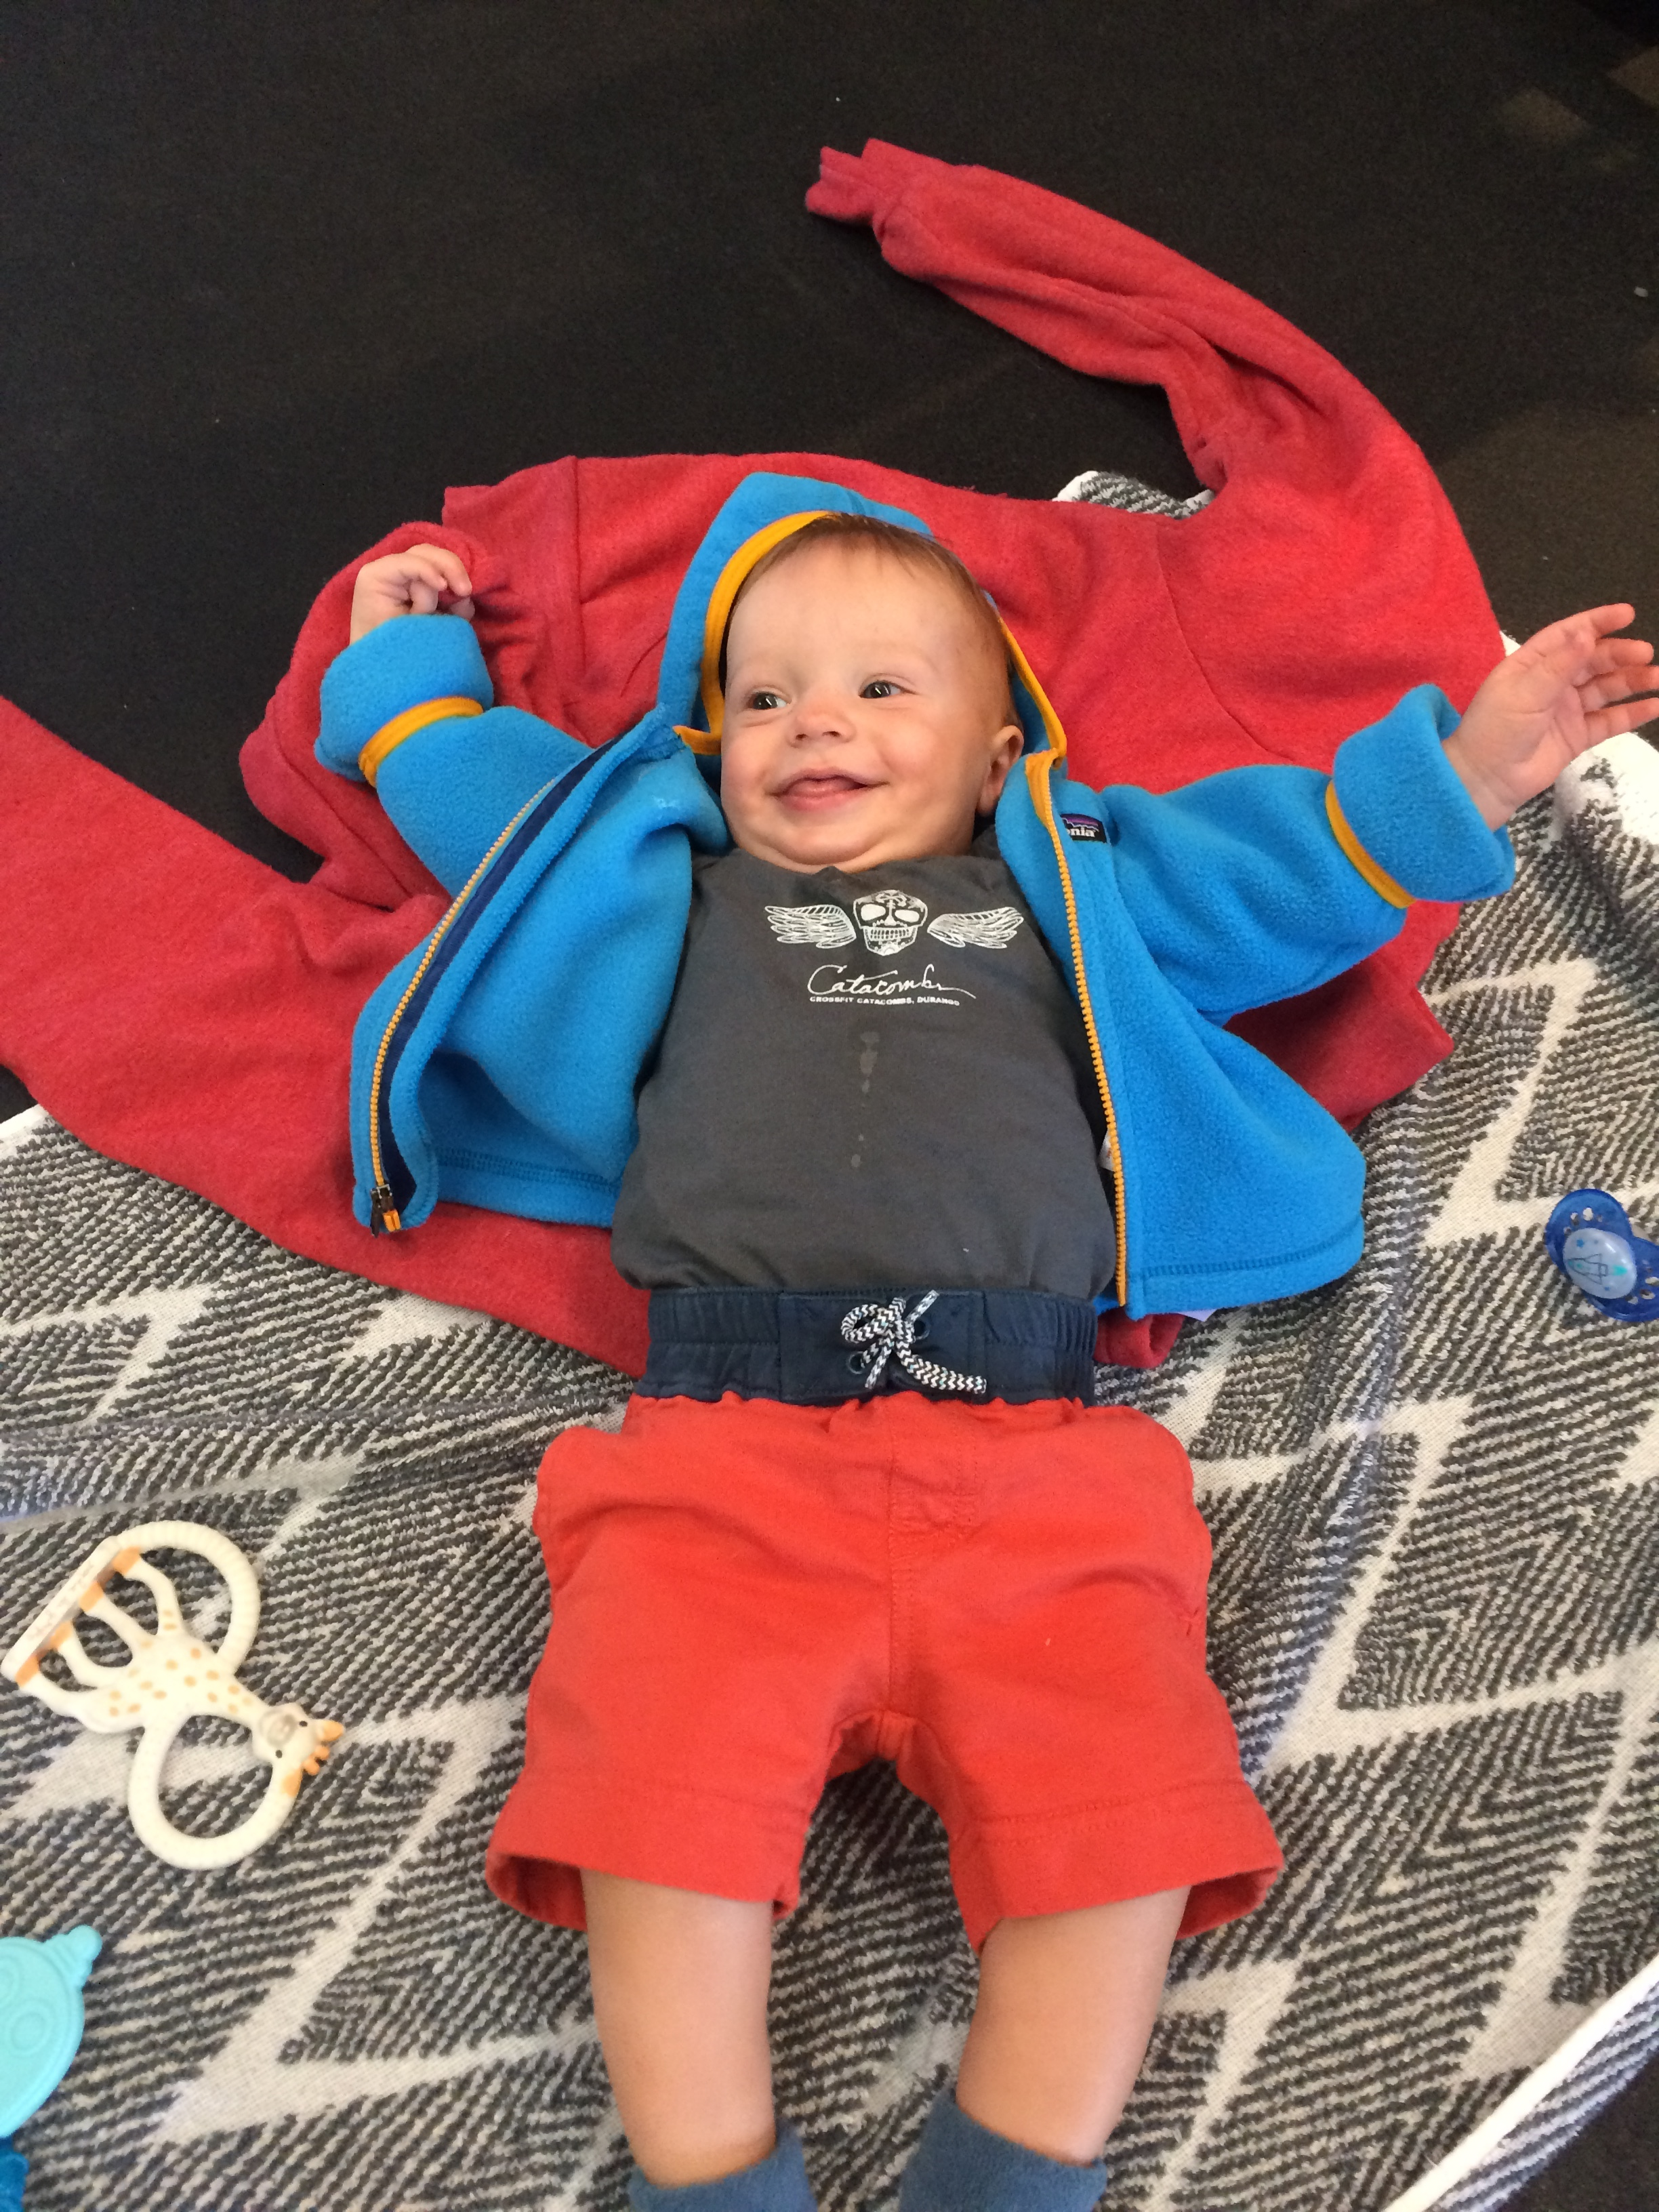 Shout out to Jennifer Floyd and Cartwheel Clothing for the Catacombs Onesie. Kudos to Baby George for repping it well!